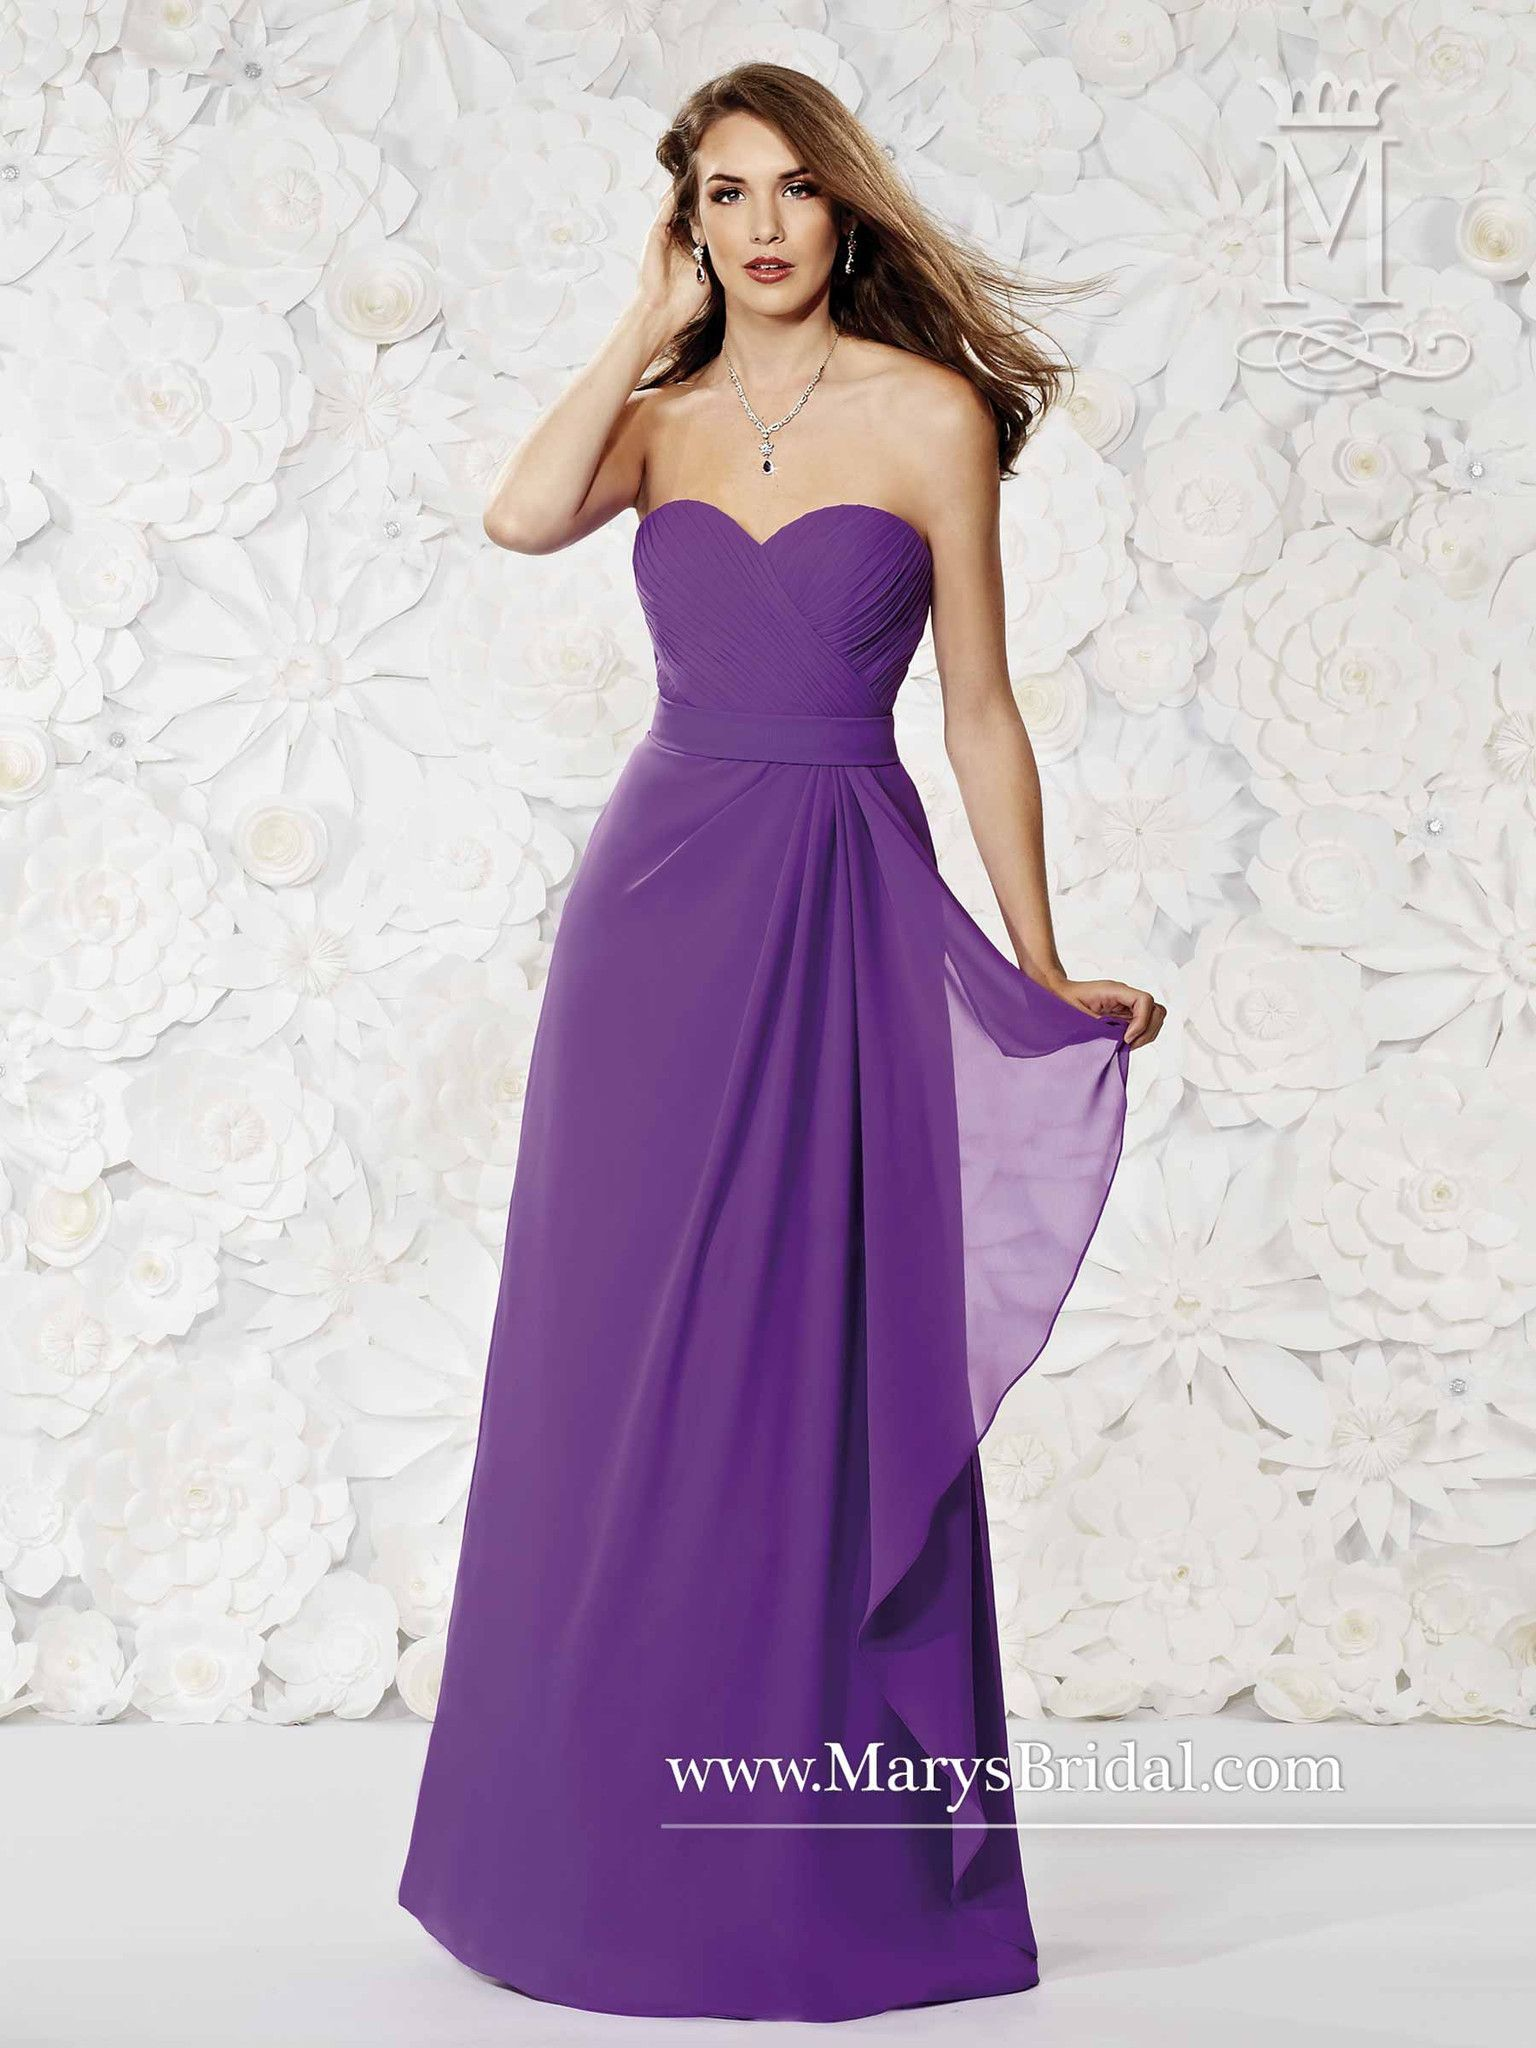 Chiffon A-Line Sweetheart Gown   Products   Pinterest